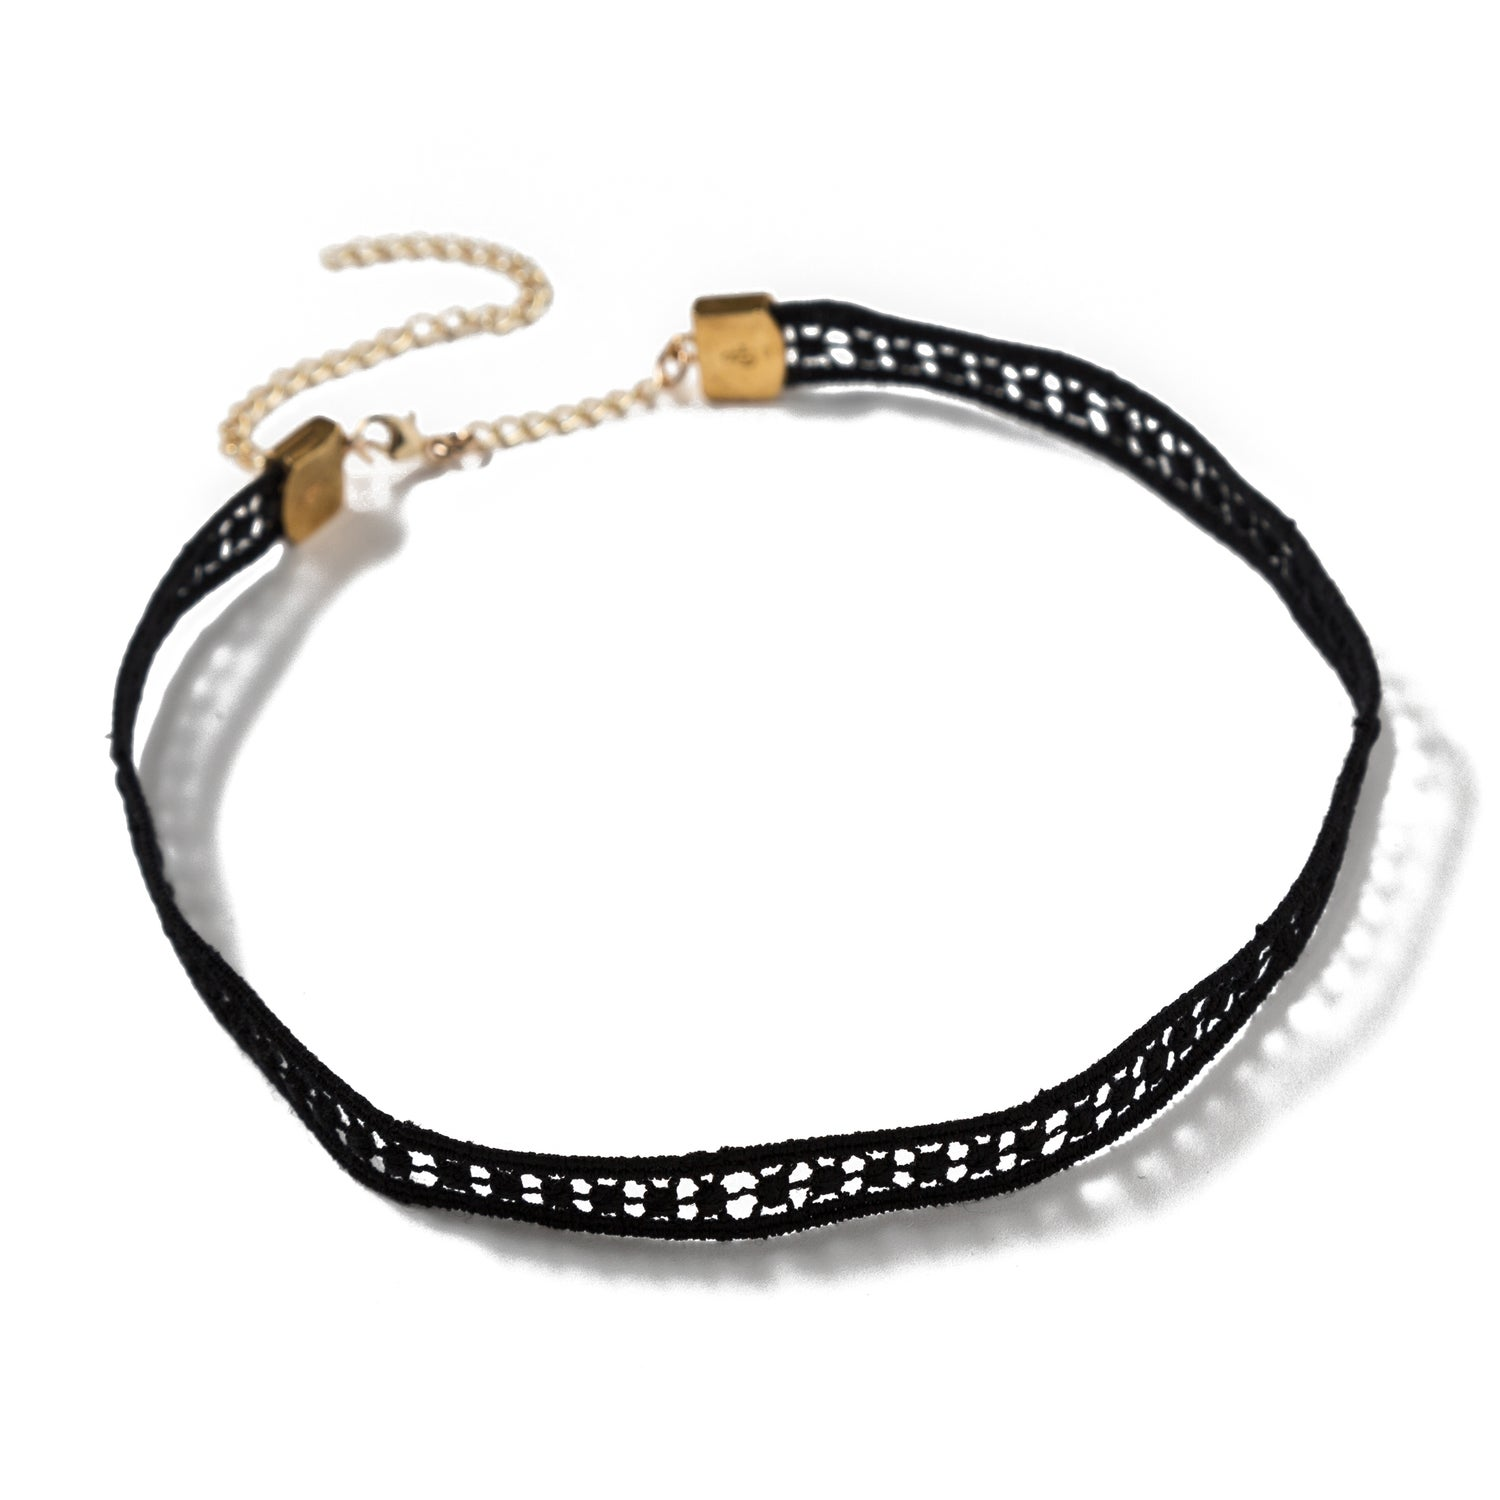 Image of The Woven Choker